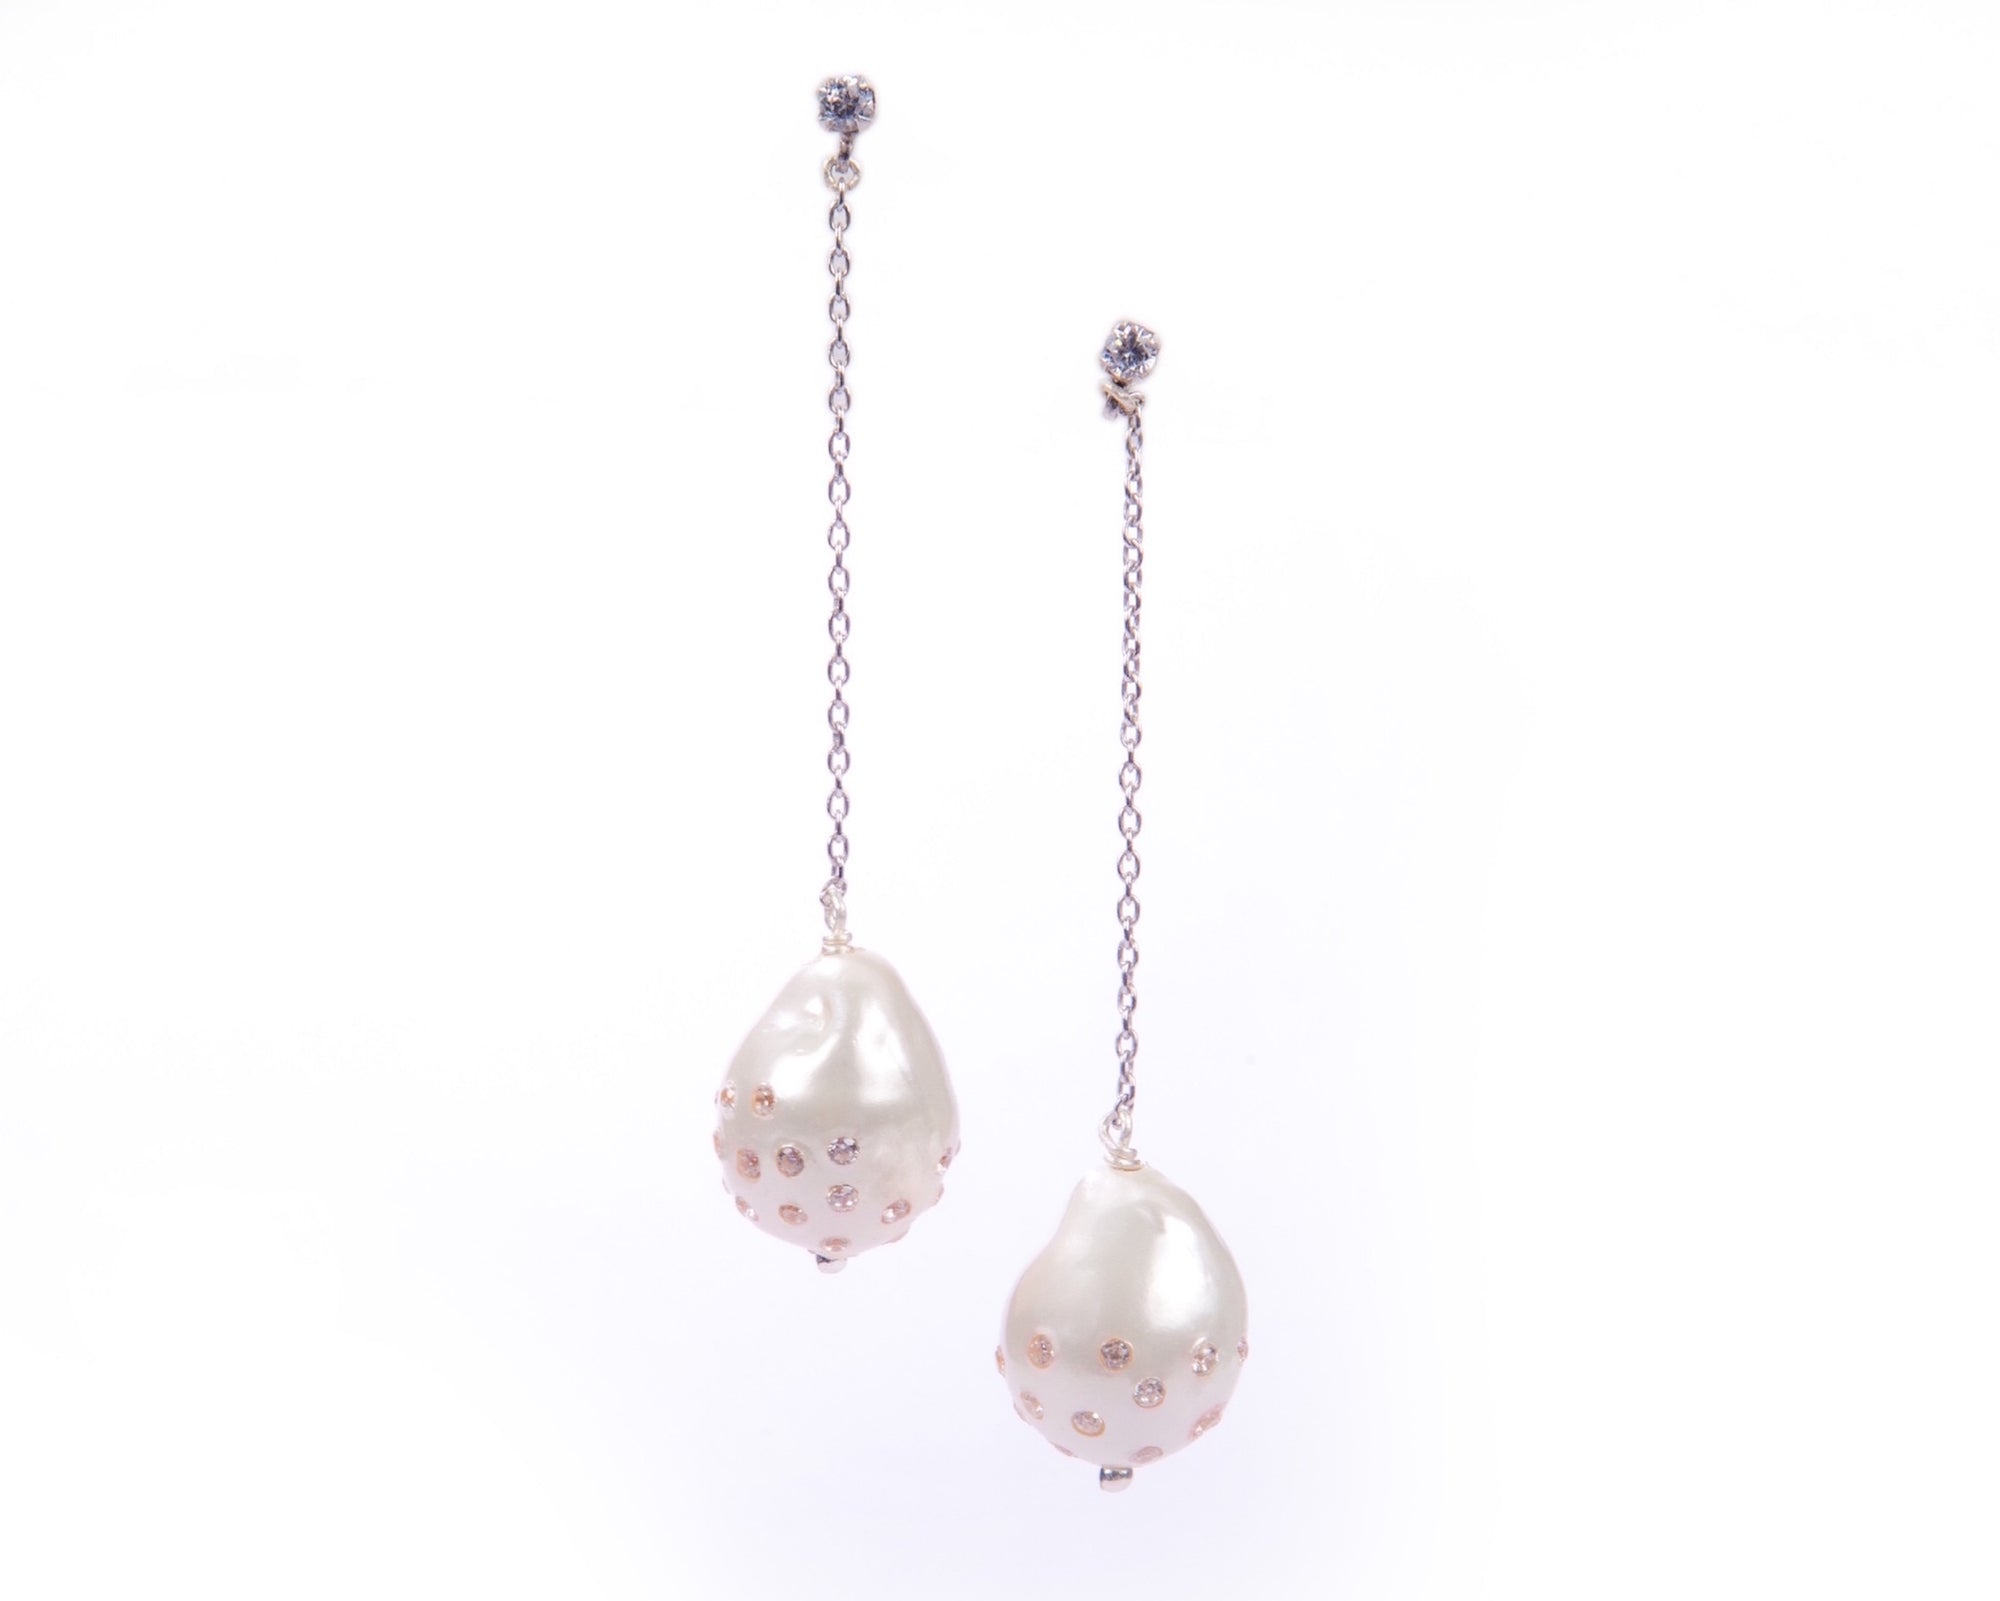 Studded baroque drops